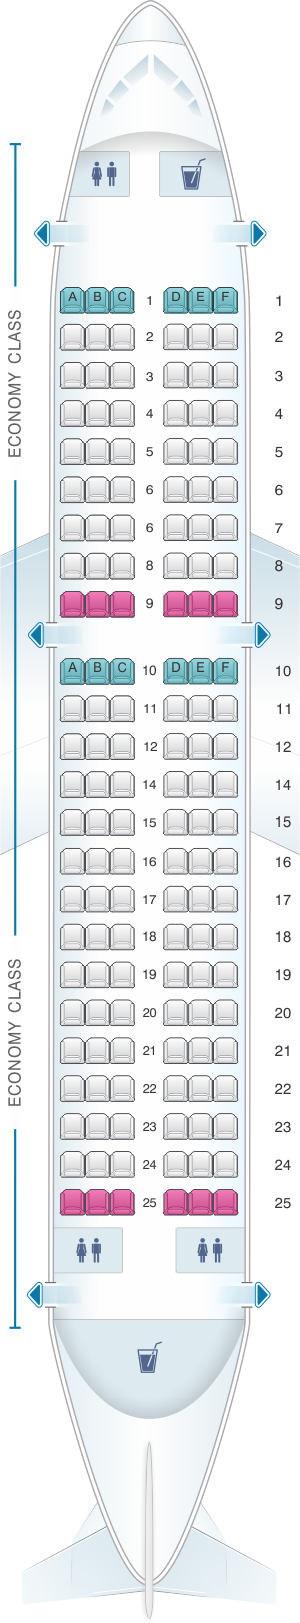 Seat map for Air India Airbus A319 Single  Configuration